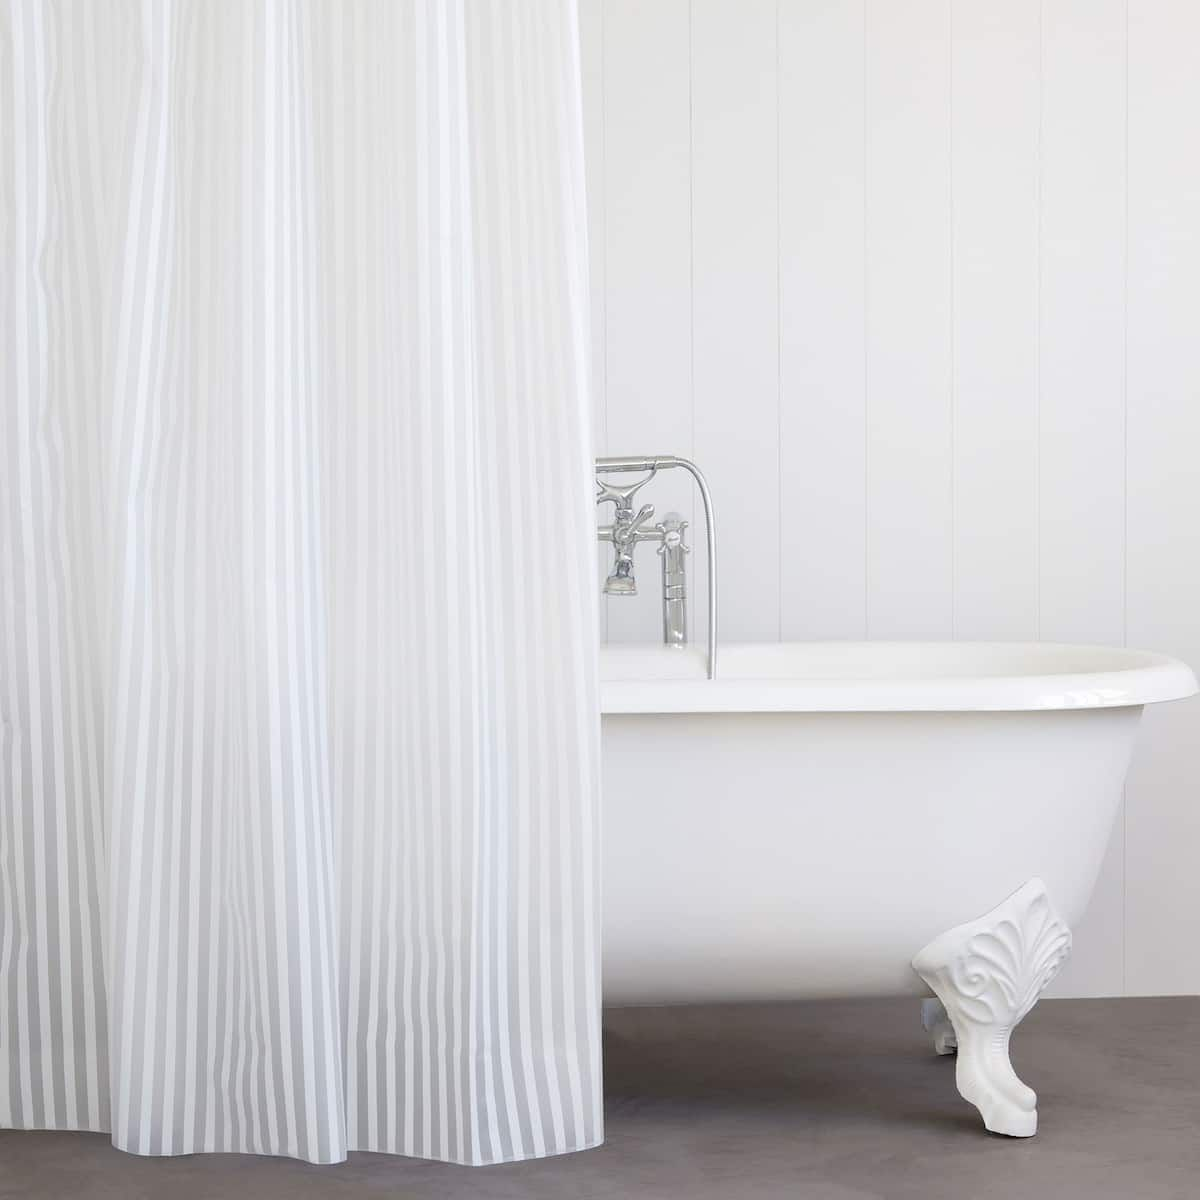 Image 1 Of The Product Striped Shower Curtain Zara Home Shower